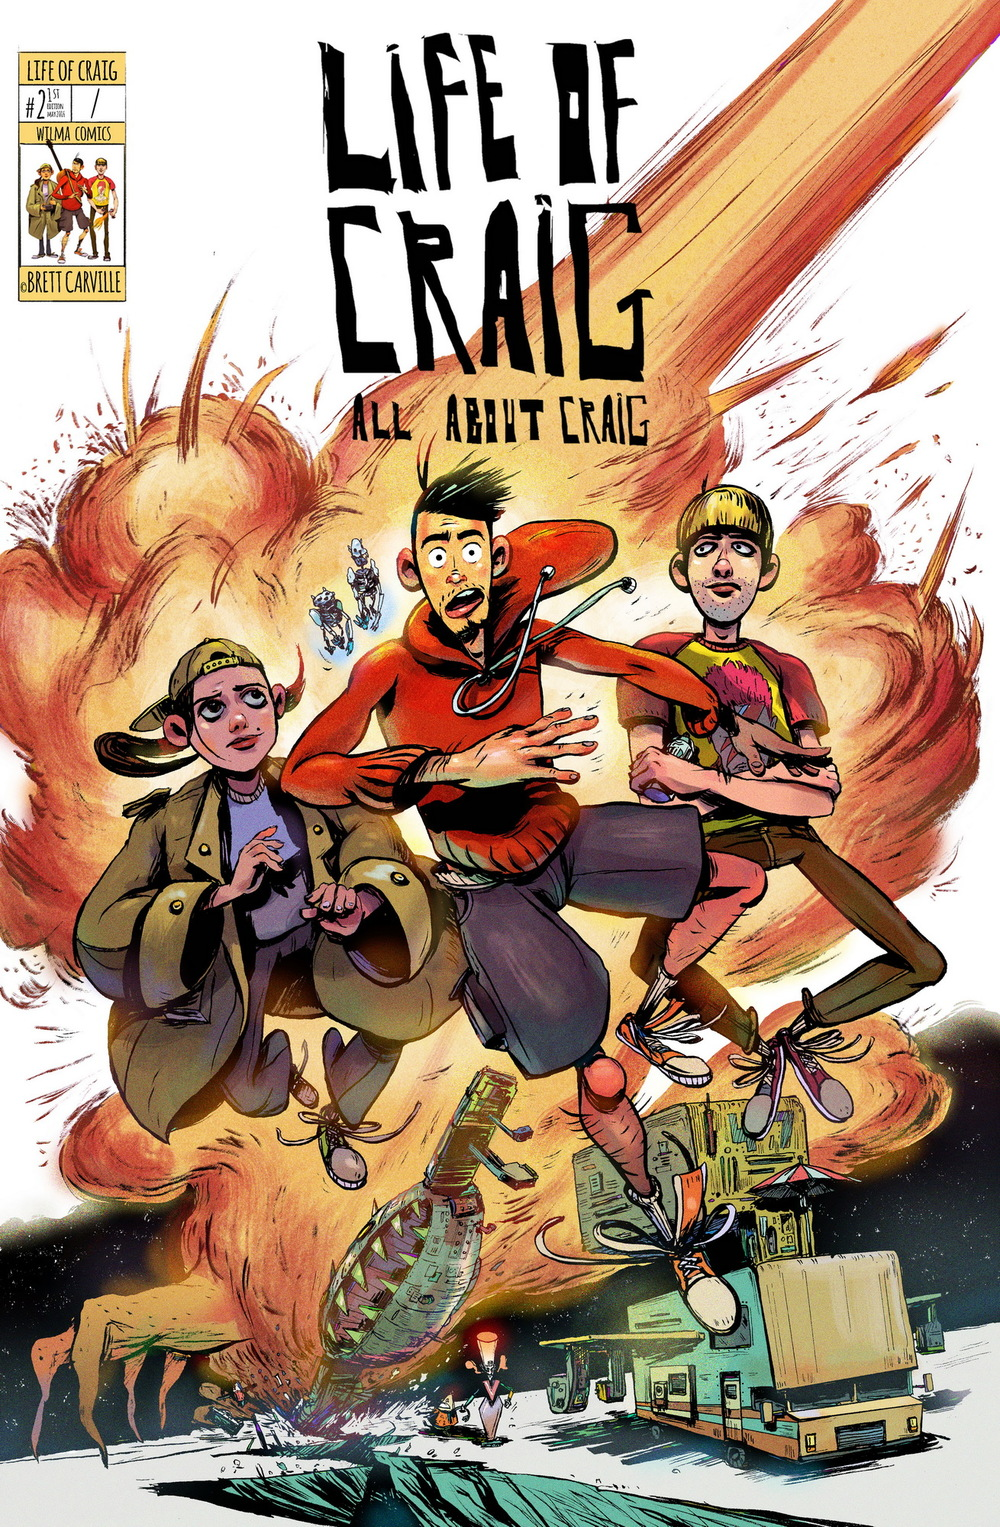 1 life of Craig issue 2 cover.jpg